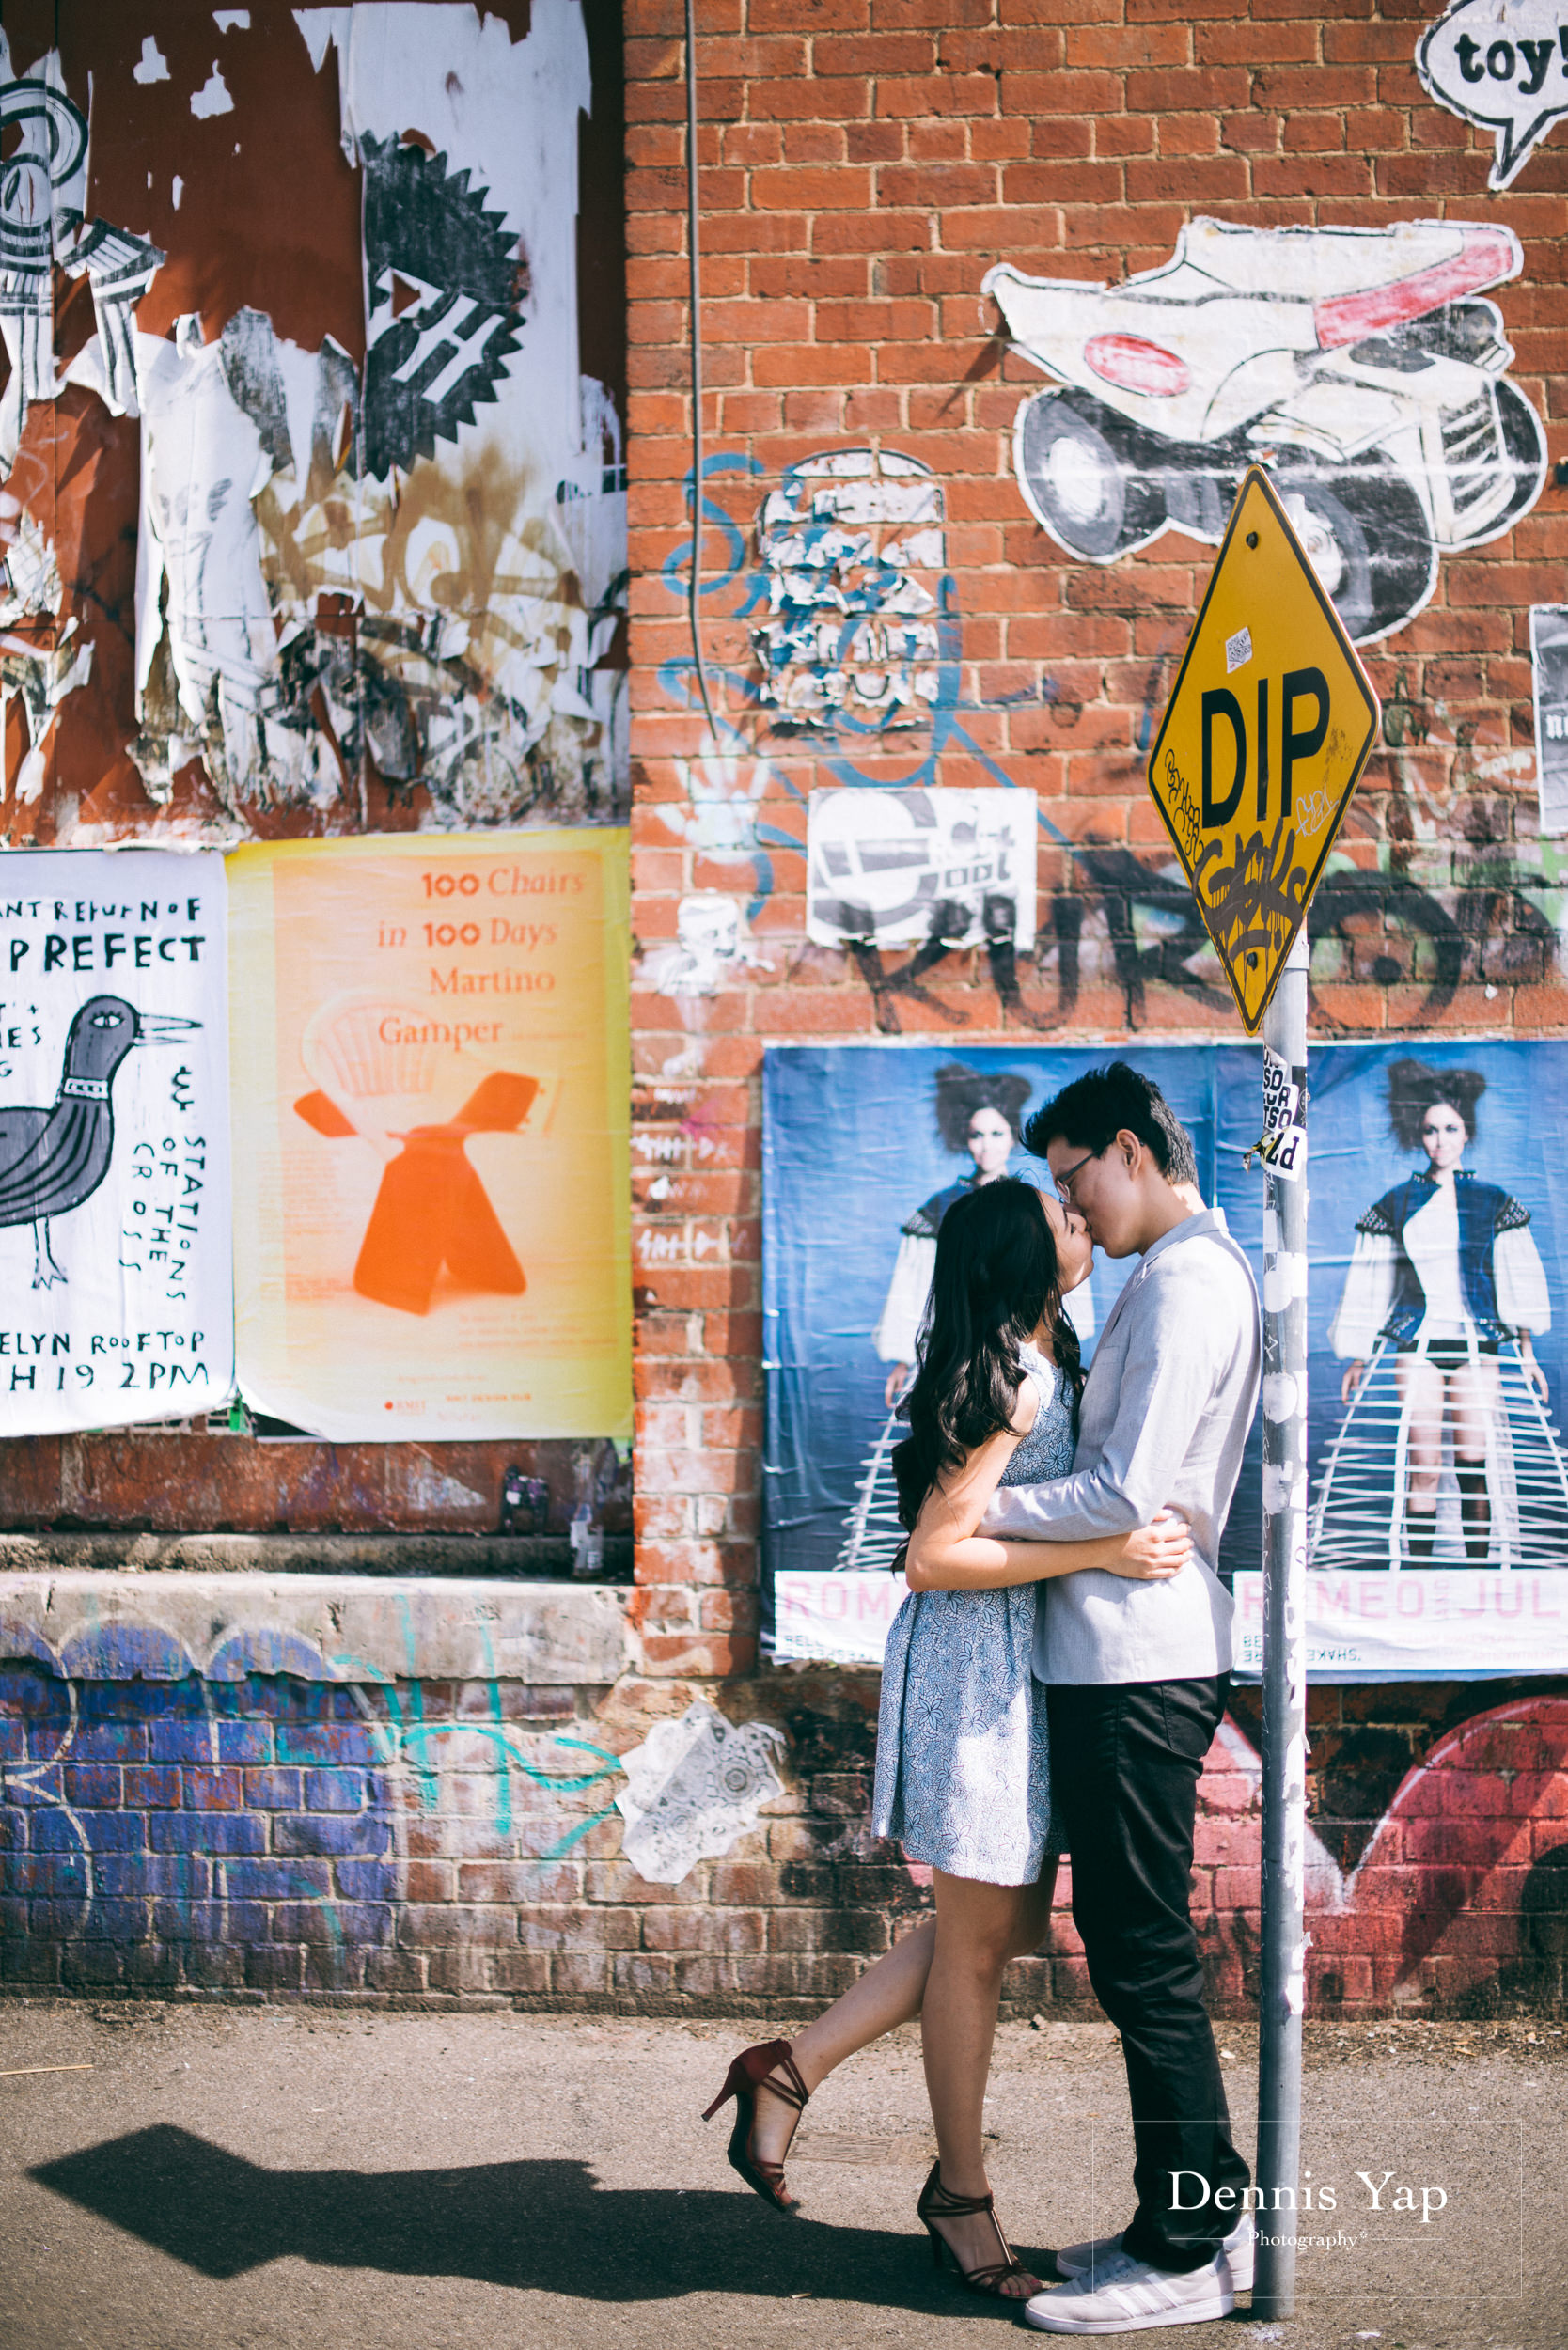 daniel amelia pre wedding melbourne dennis yap photography malaysia wedding photographer-5.jpg